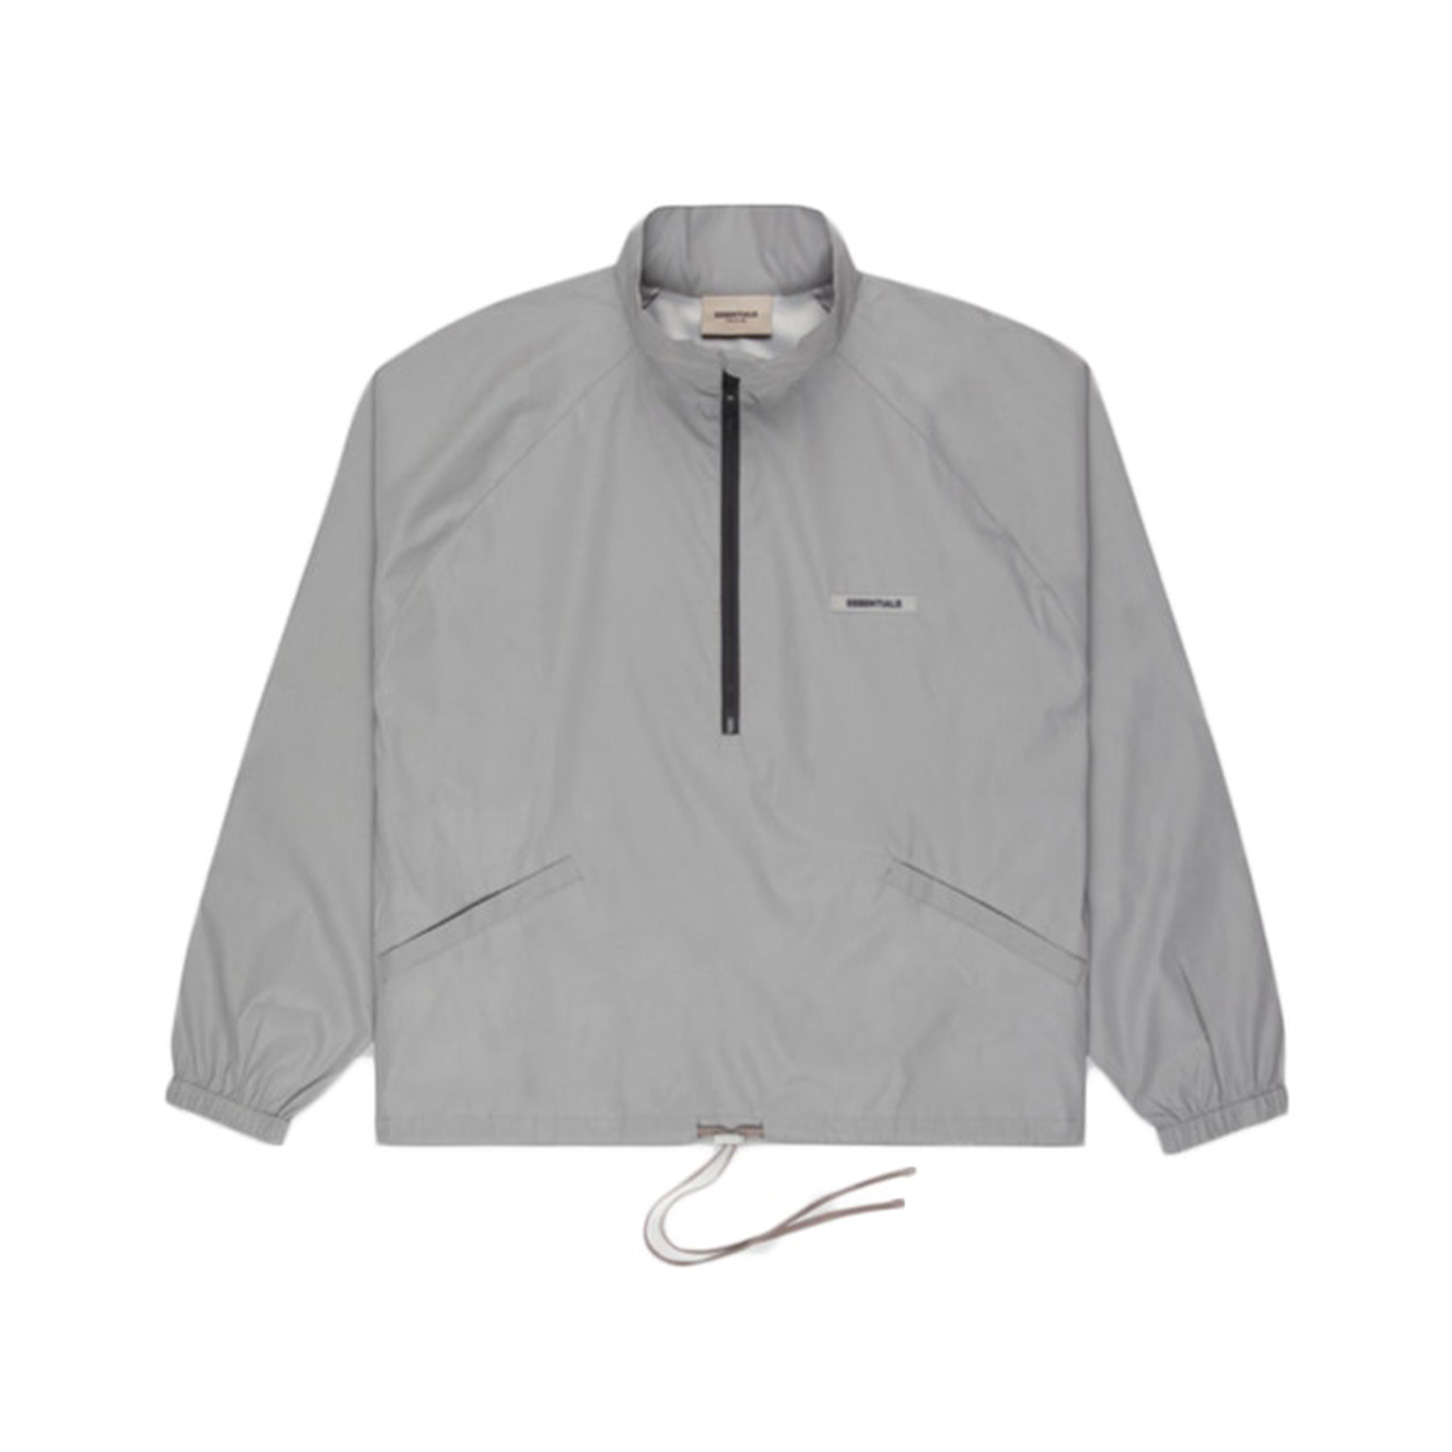 FEAR OF GOD ESSENTIALS Track Jacket Silver Reflective 20SS